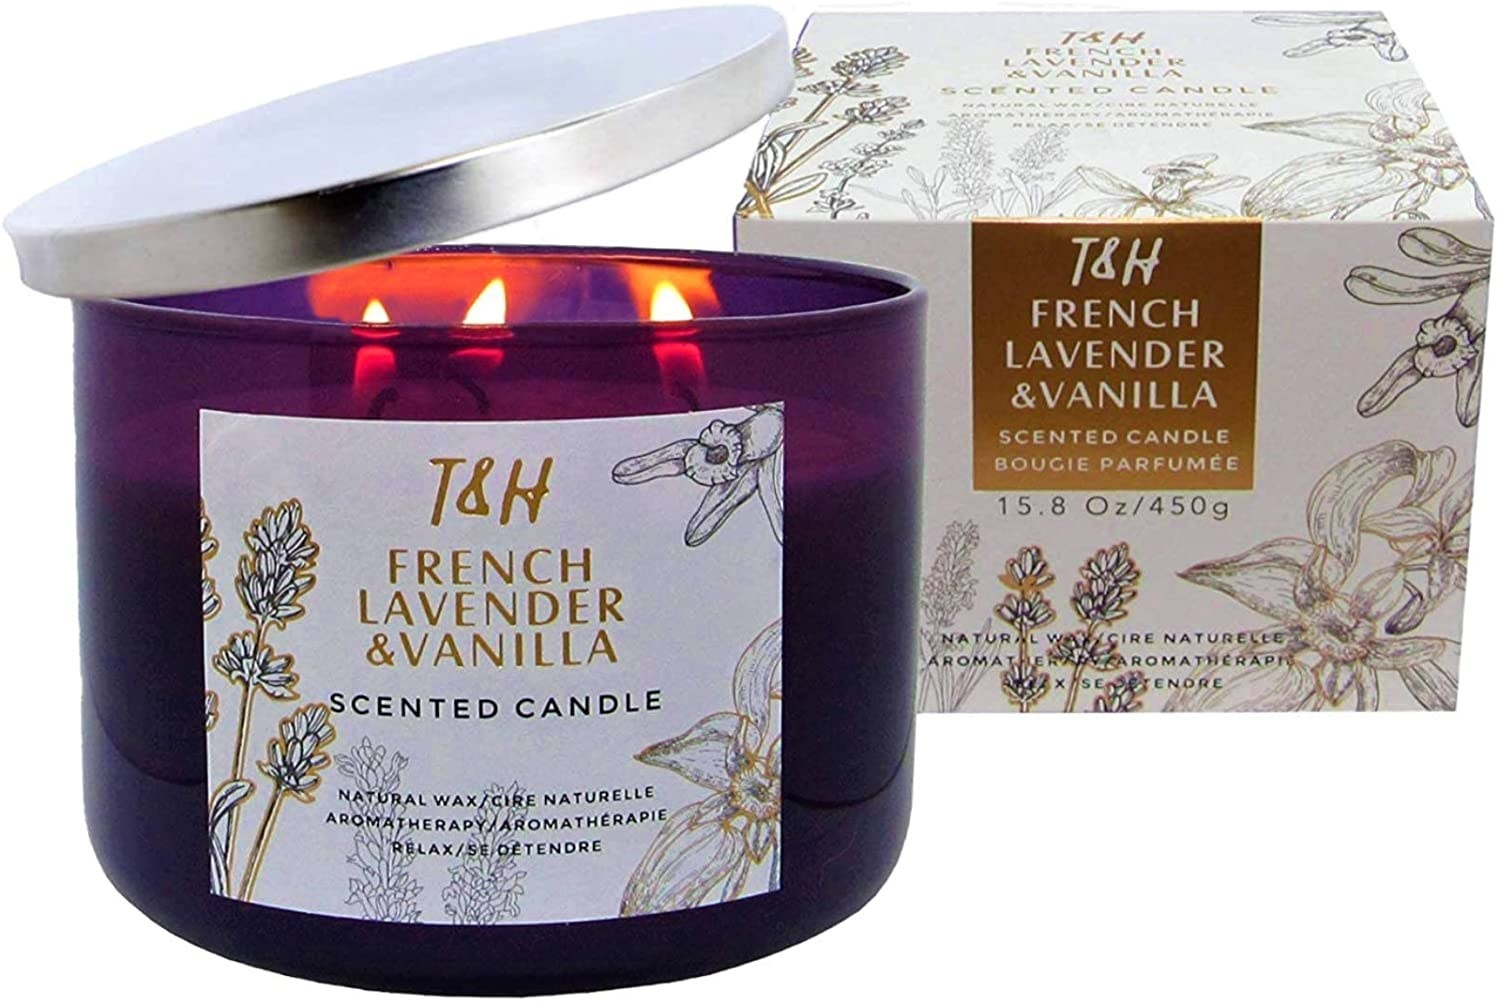 the T&H French Lavender & Vanilla Aromatherapy Candle